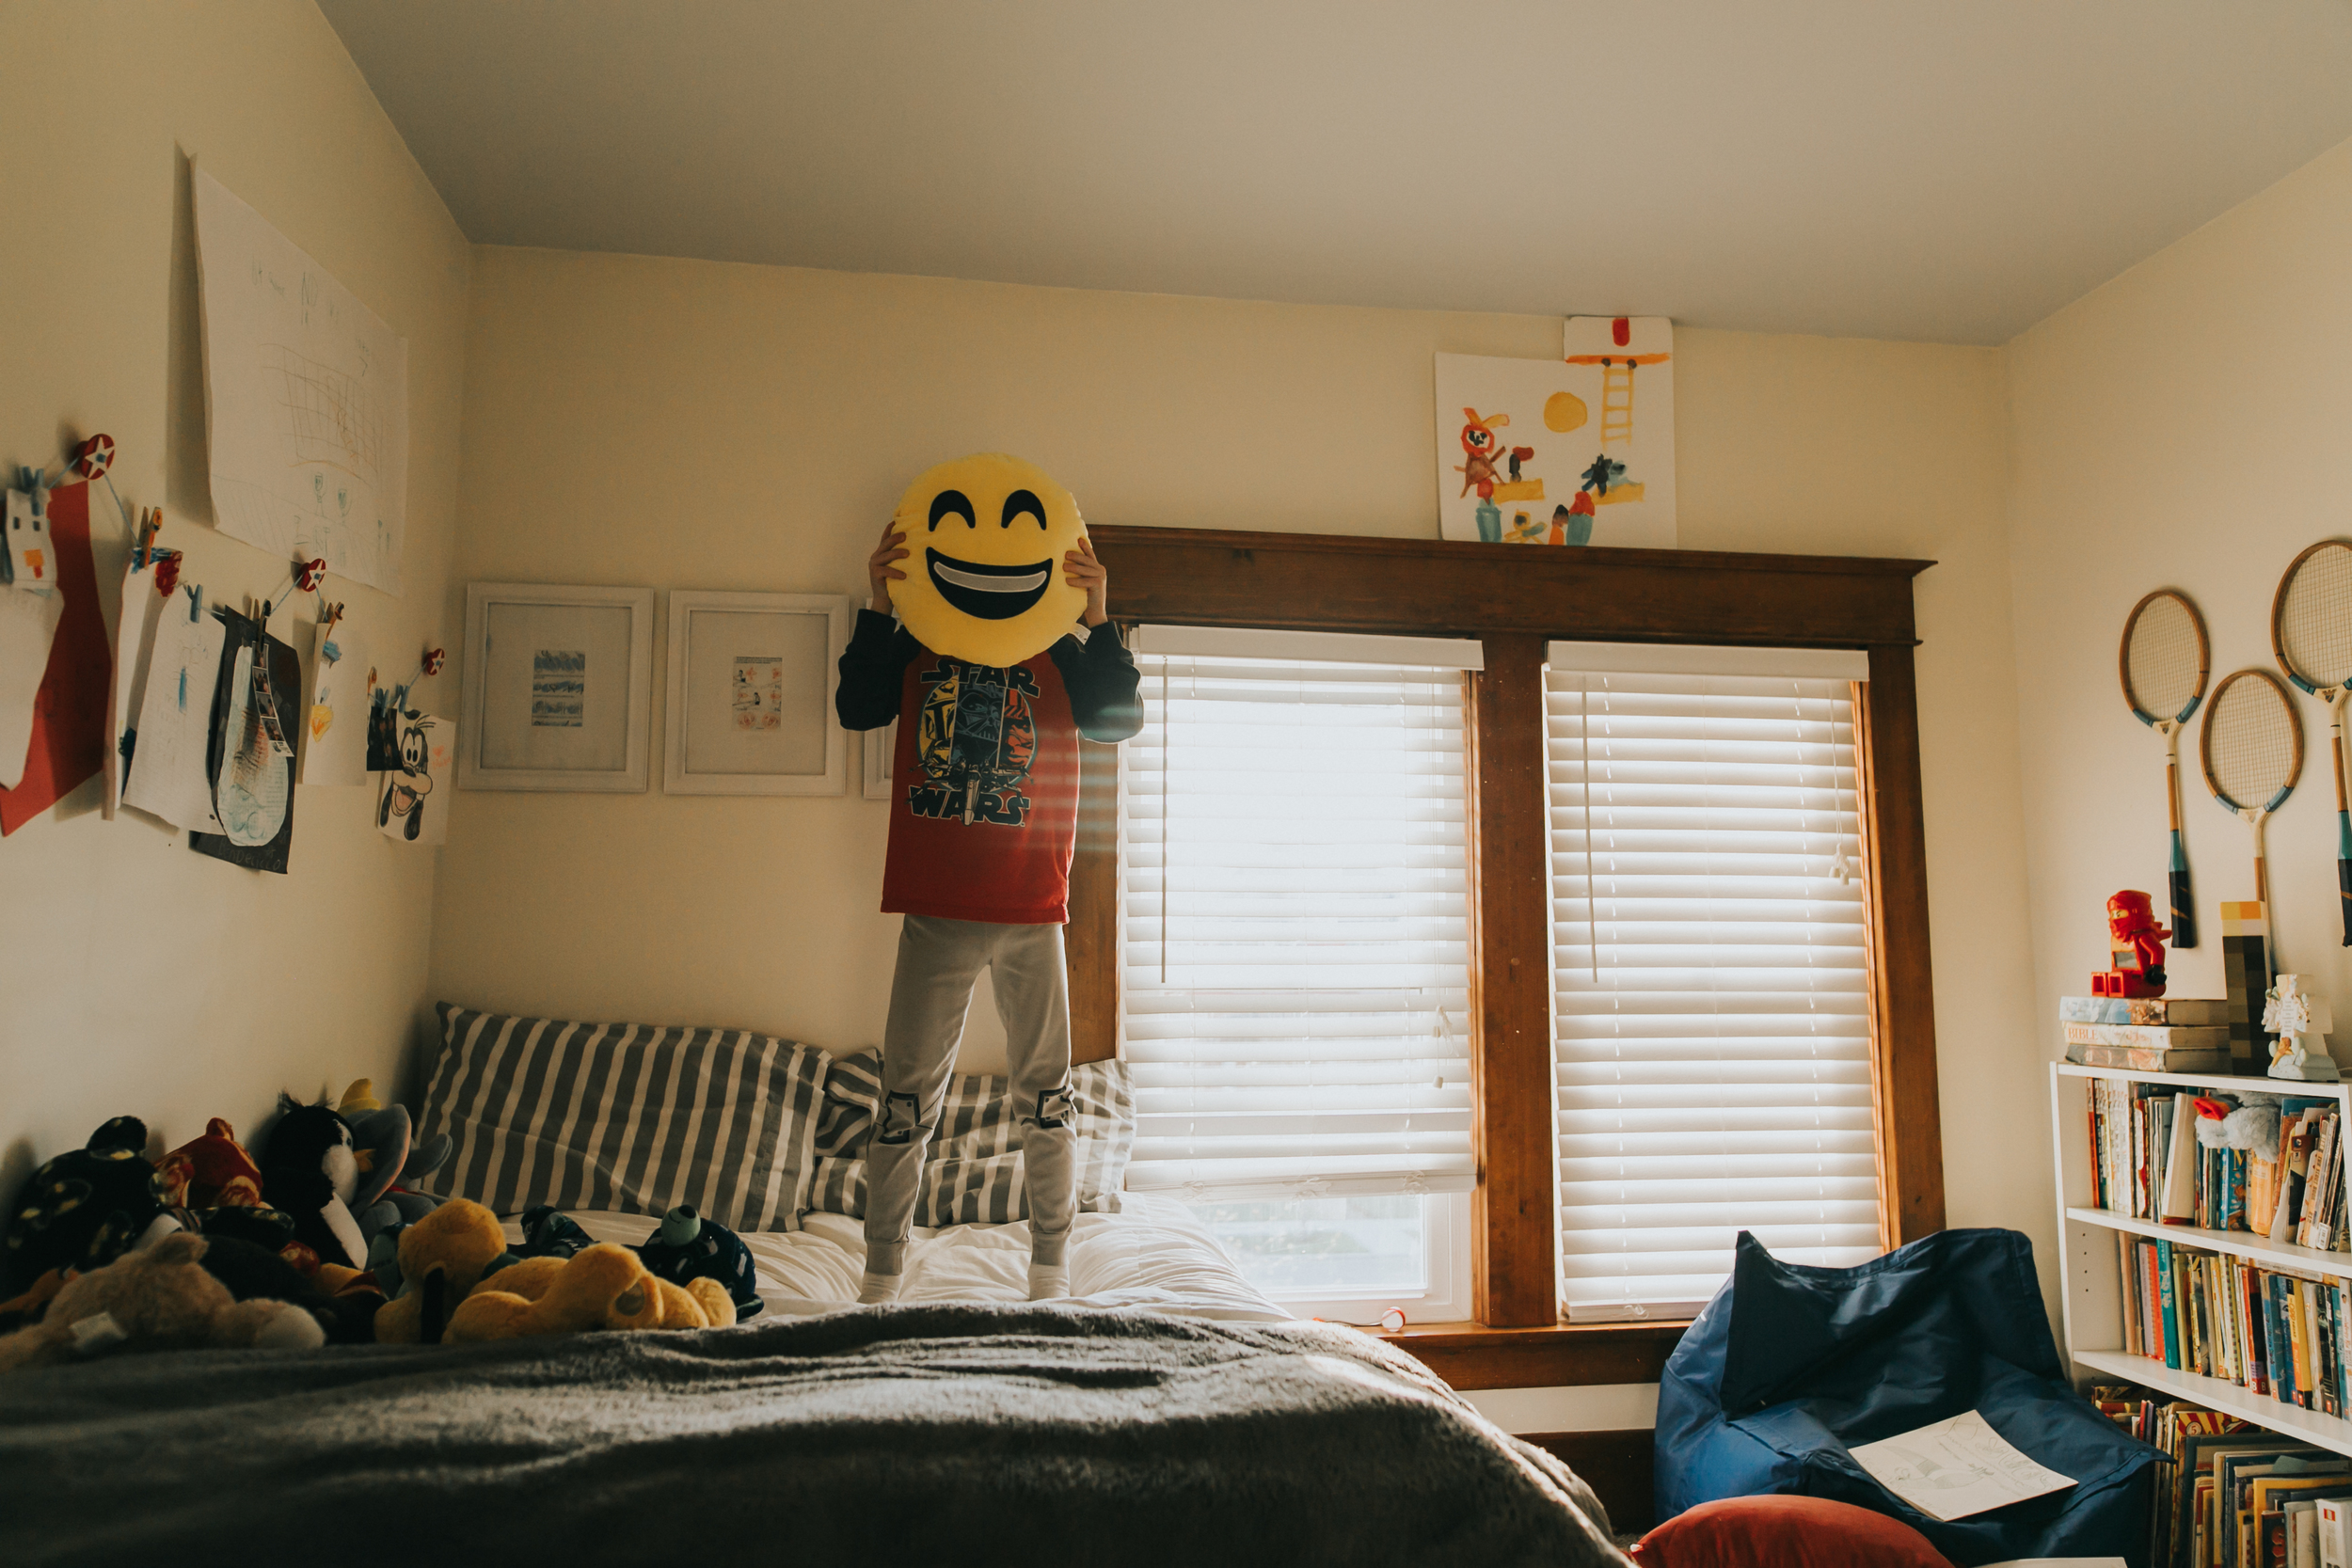 This guy loves his Emoji pillow.  I love the light in his room around 7:30 pm. <3